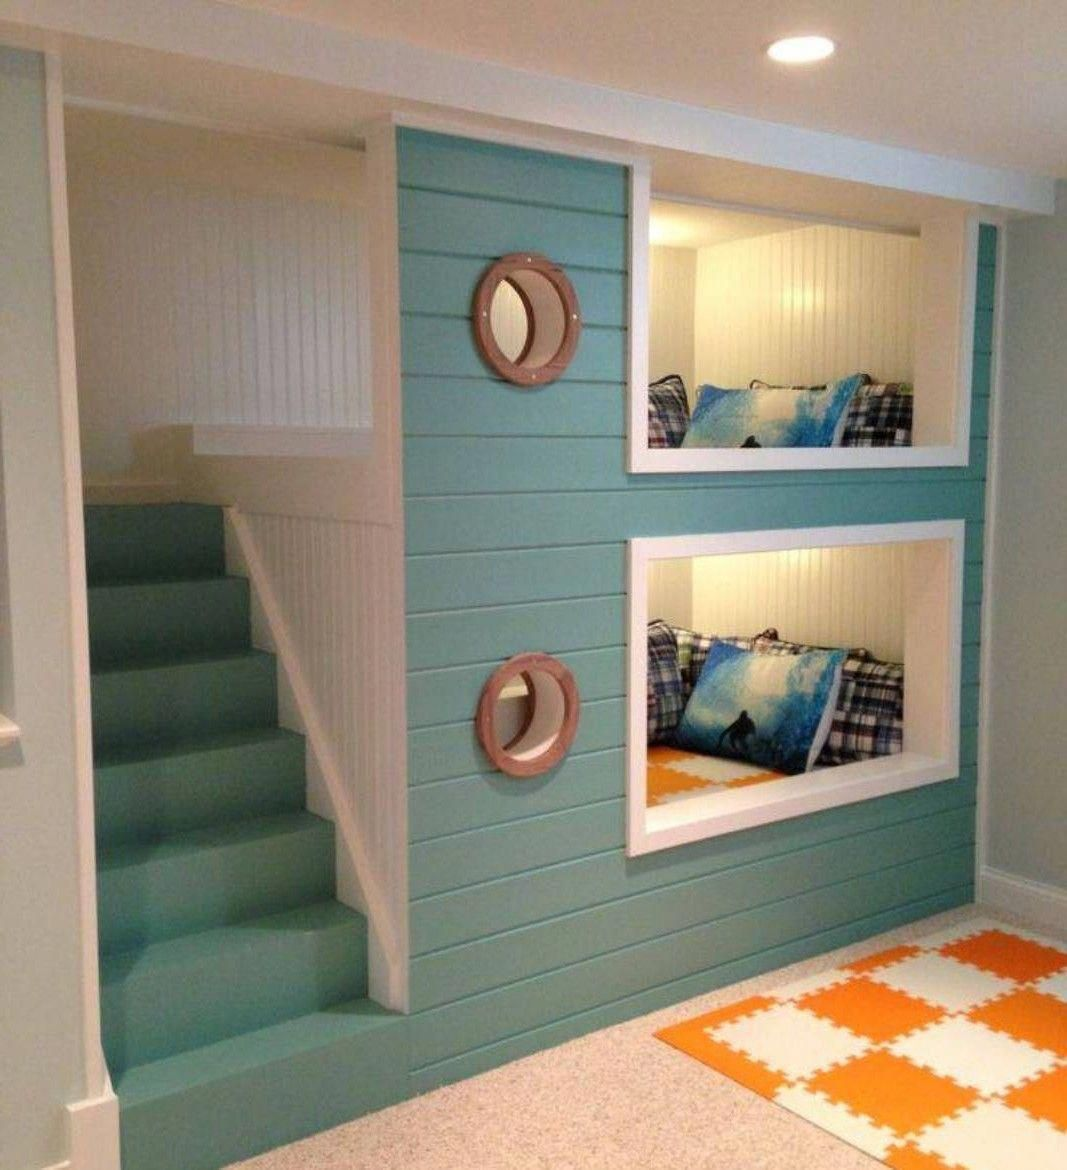 Built In Bunk Beds Space Saving Bunk Beds For Small Kids Room